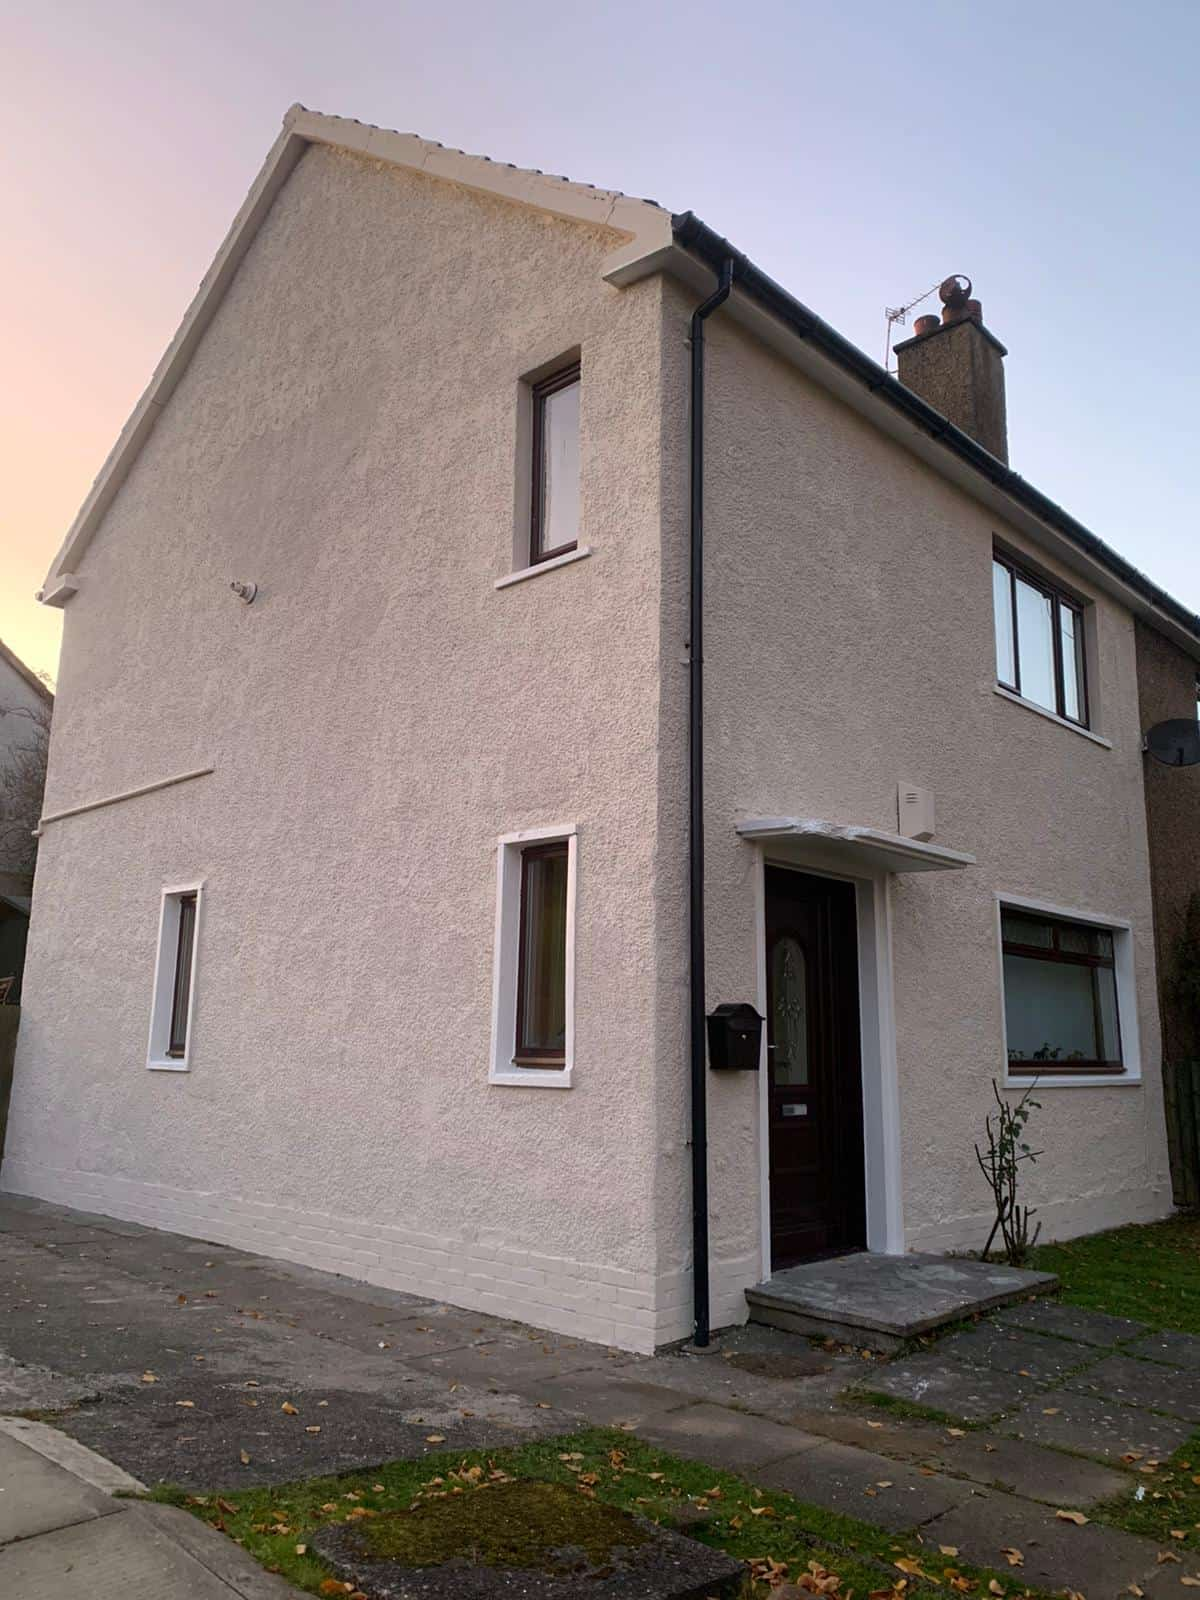 gable end roughcast Glasgow